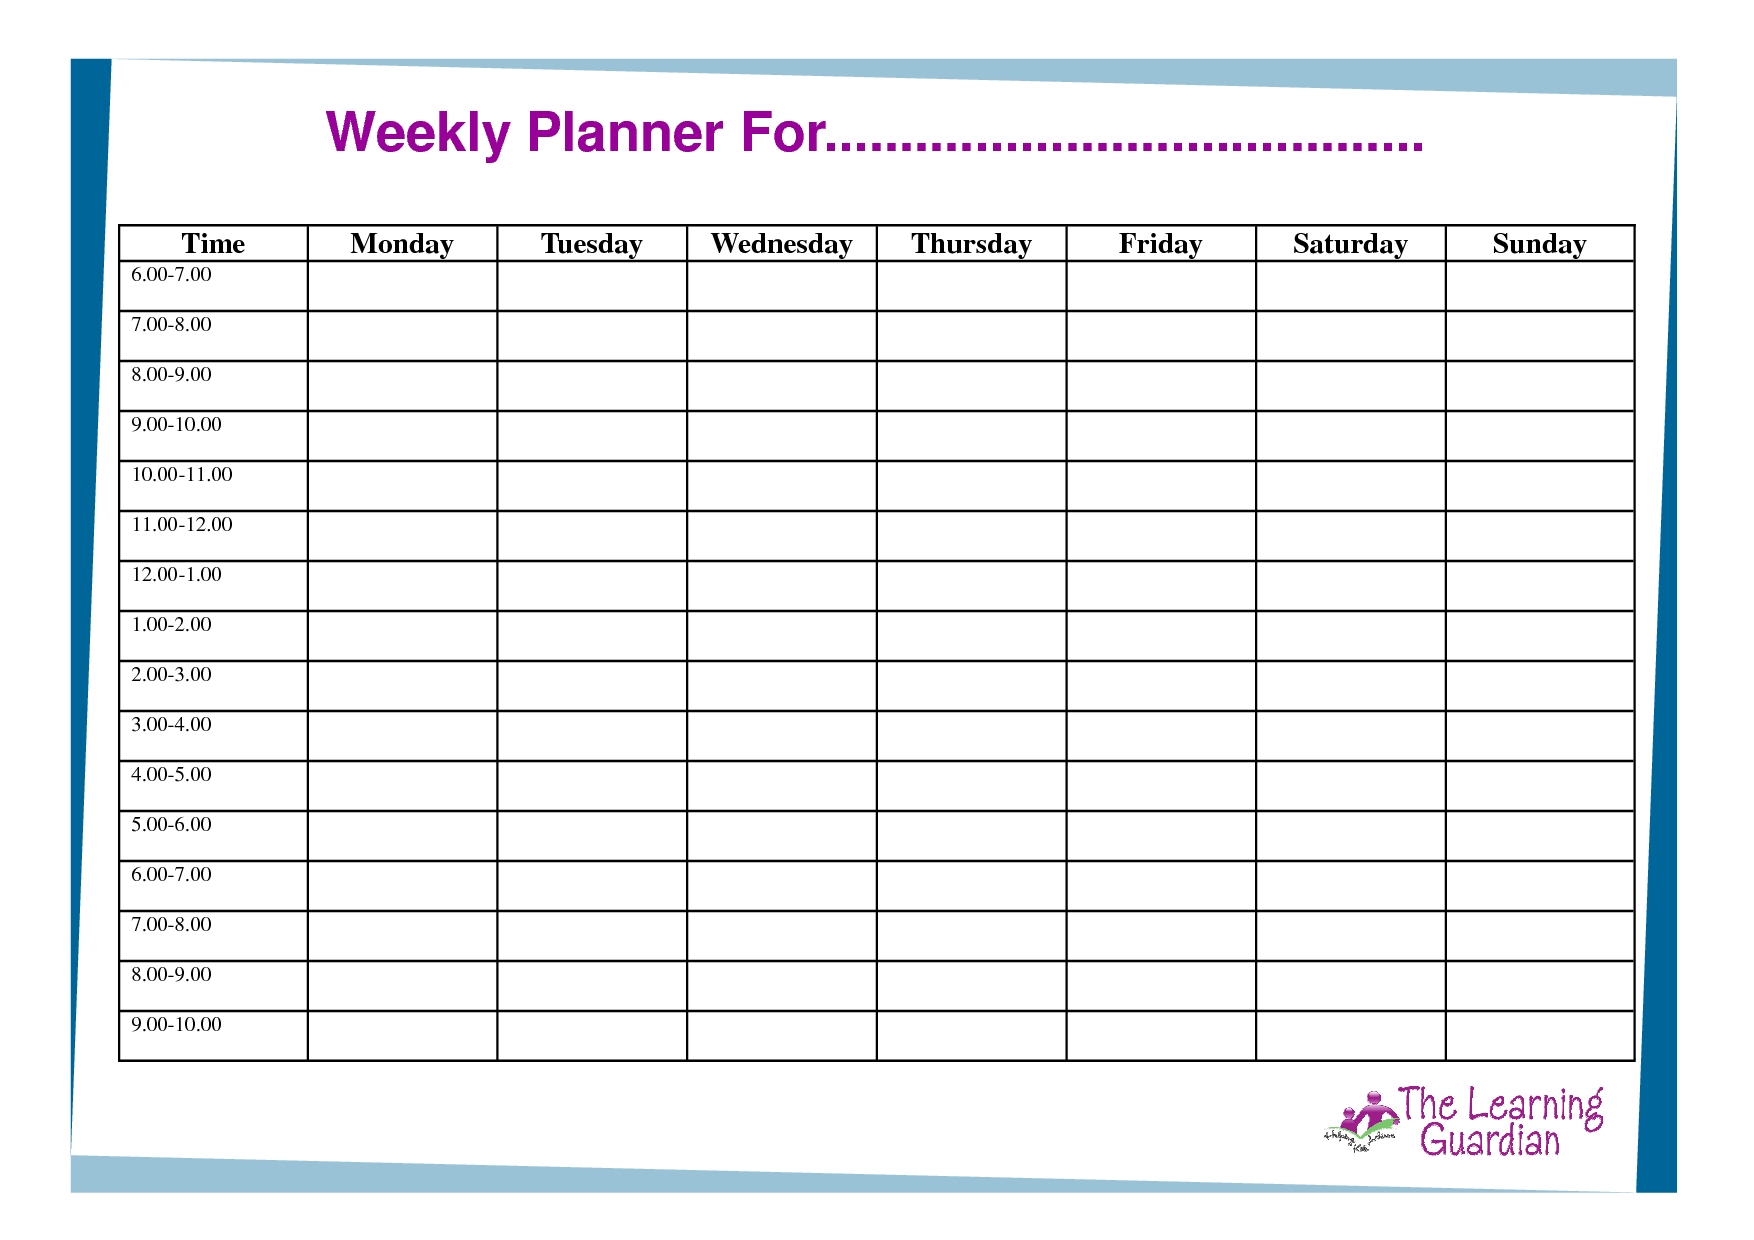 Schedule Template Blank Calendar With Times Daily Time Slots Day regarding 5 Day Week Blank Calendar With Time Slots Printable